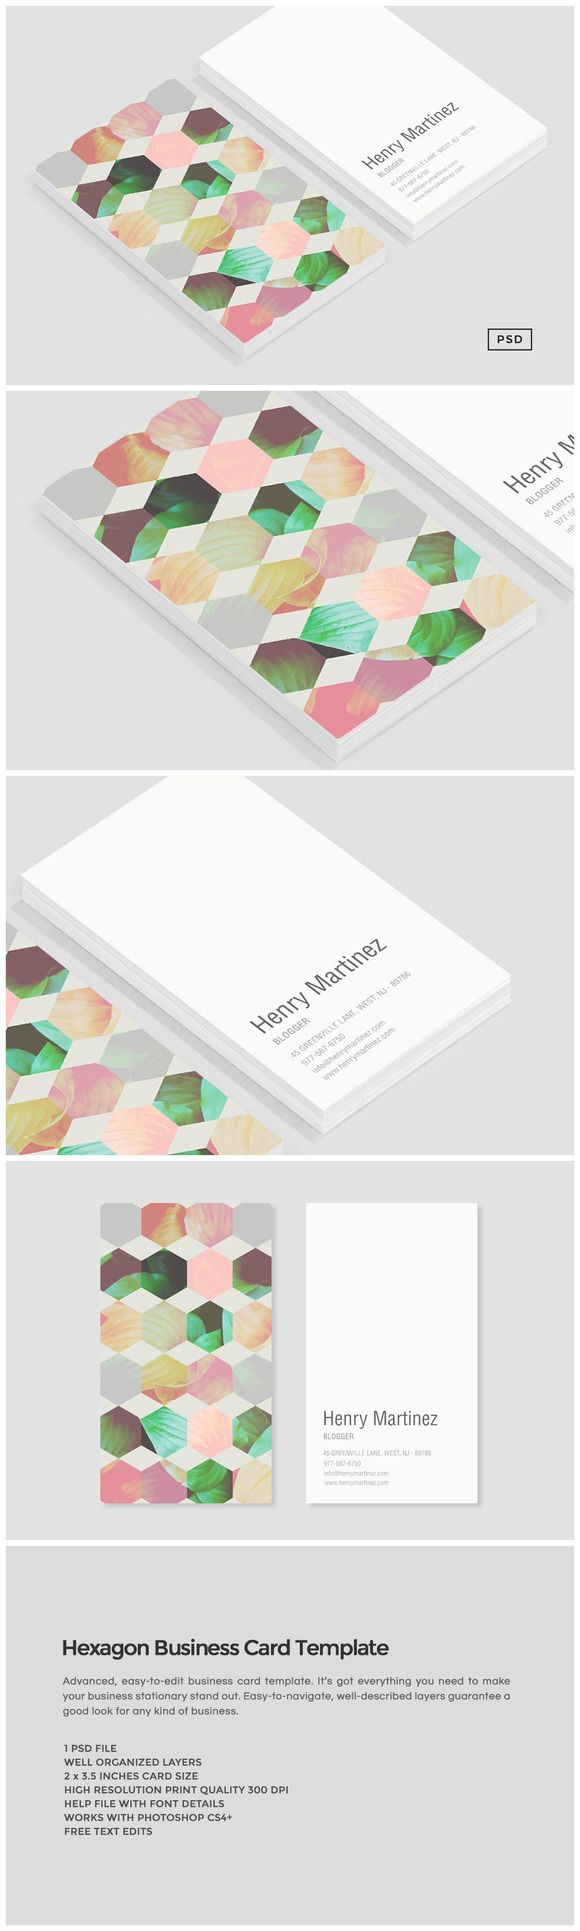 Fantastic 1 Button Template Huge 1 Year Experience Resume In Java J2ee Square 10 Steps To Creating A Resume 100 Bill Template Young 100 Square Pool Template Brown120mm Fan Template 25  Best Ideas About Hexagon Pattern On Pinterest | Color Patterns ..